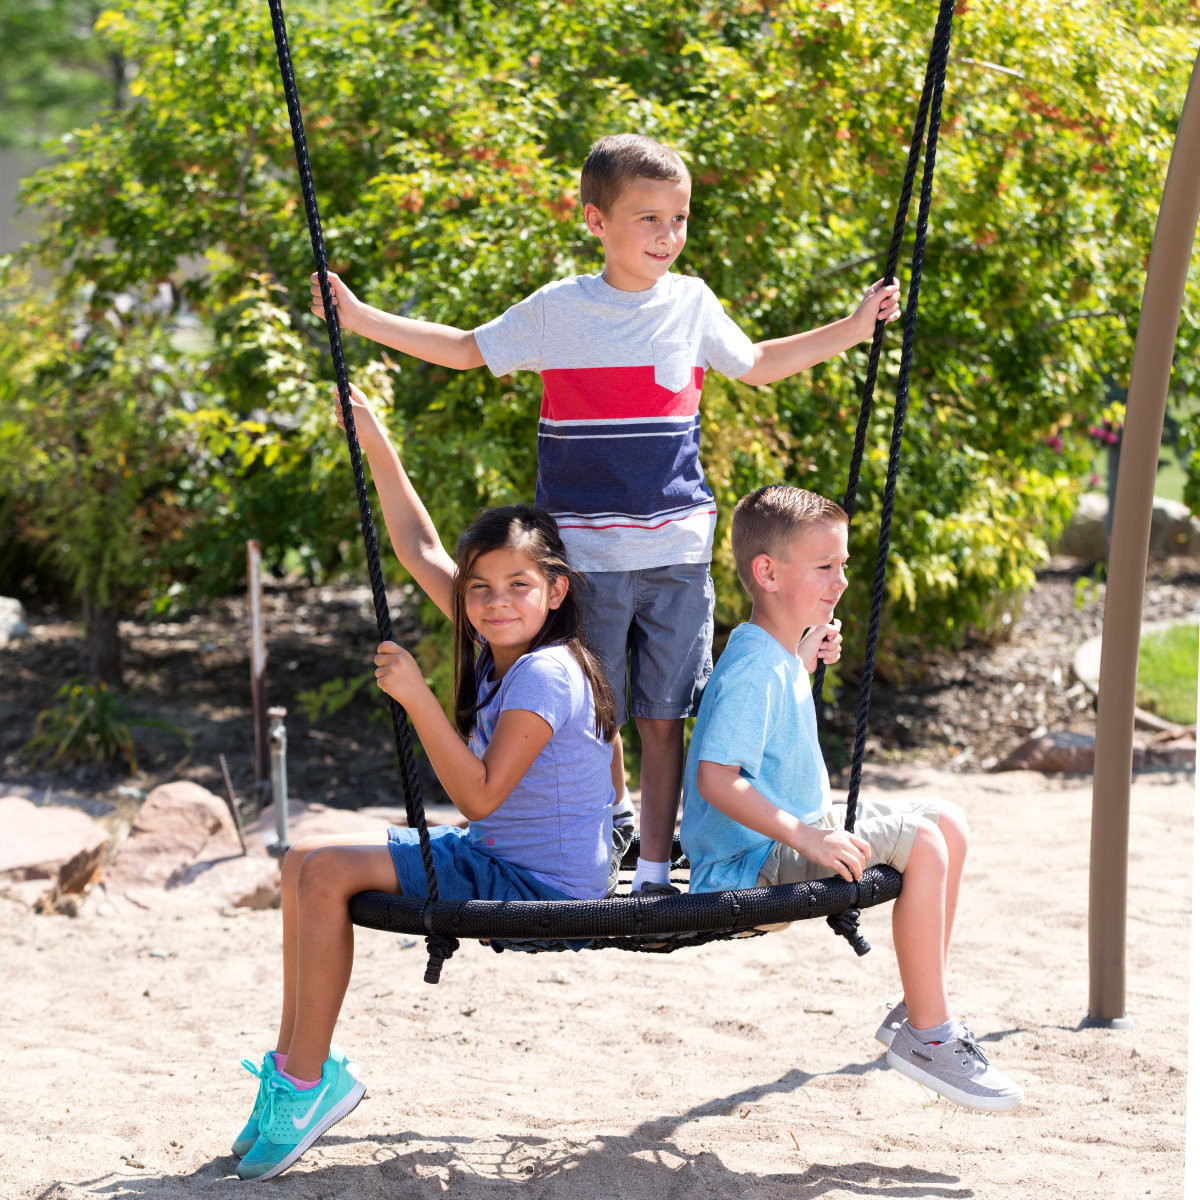 Lifetime Adventure Tower with Spider Swing (90804) - Spider Swing